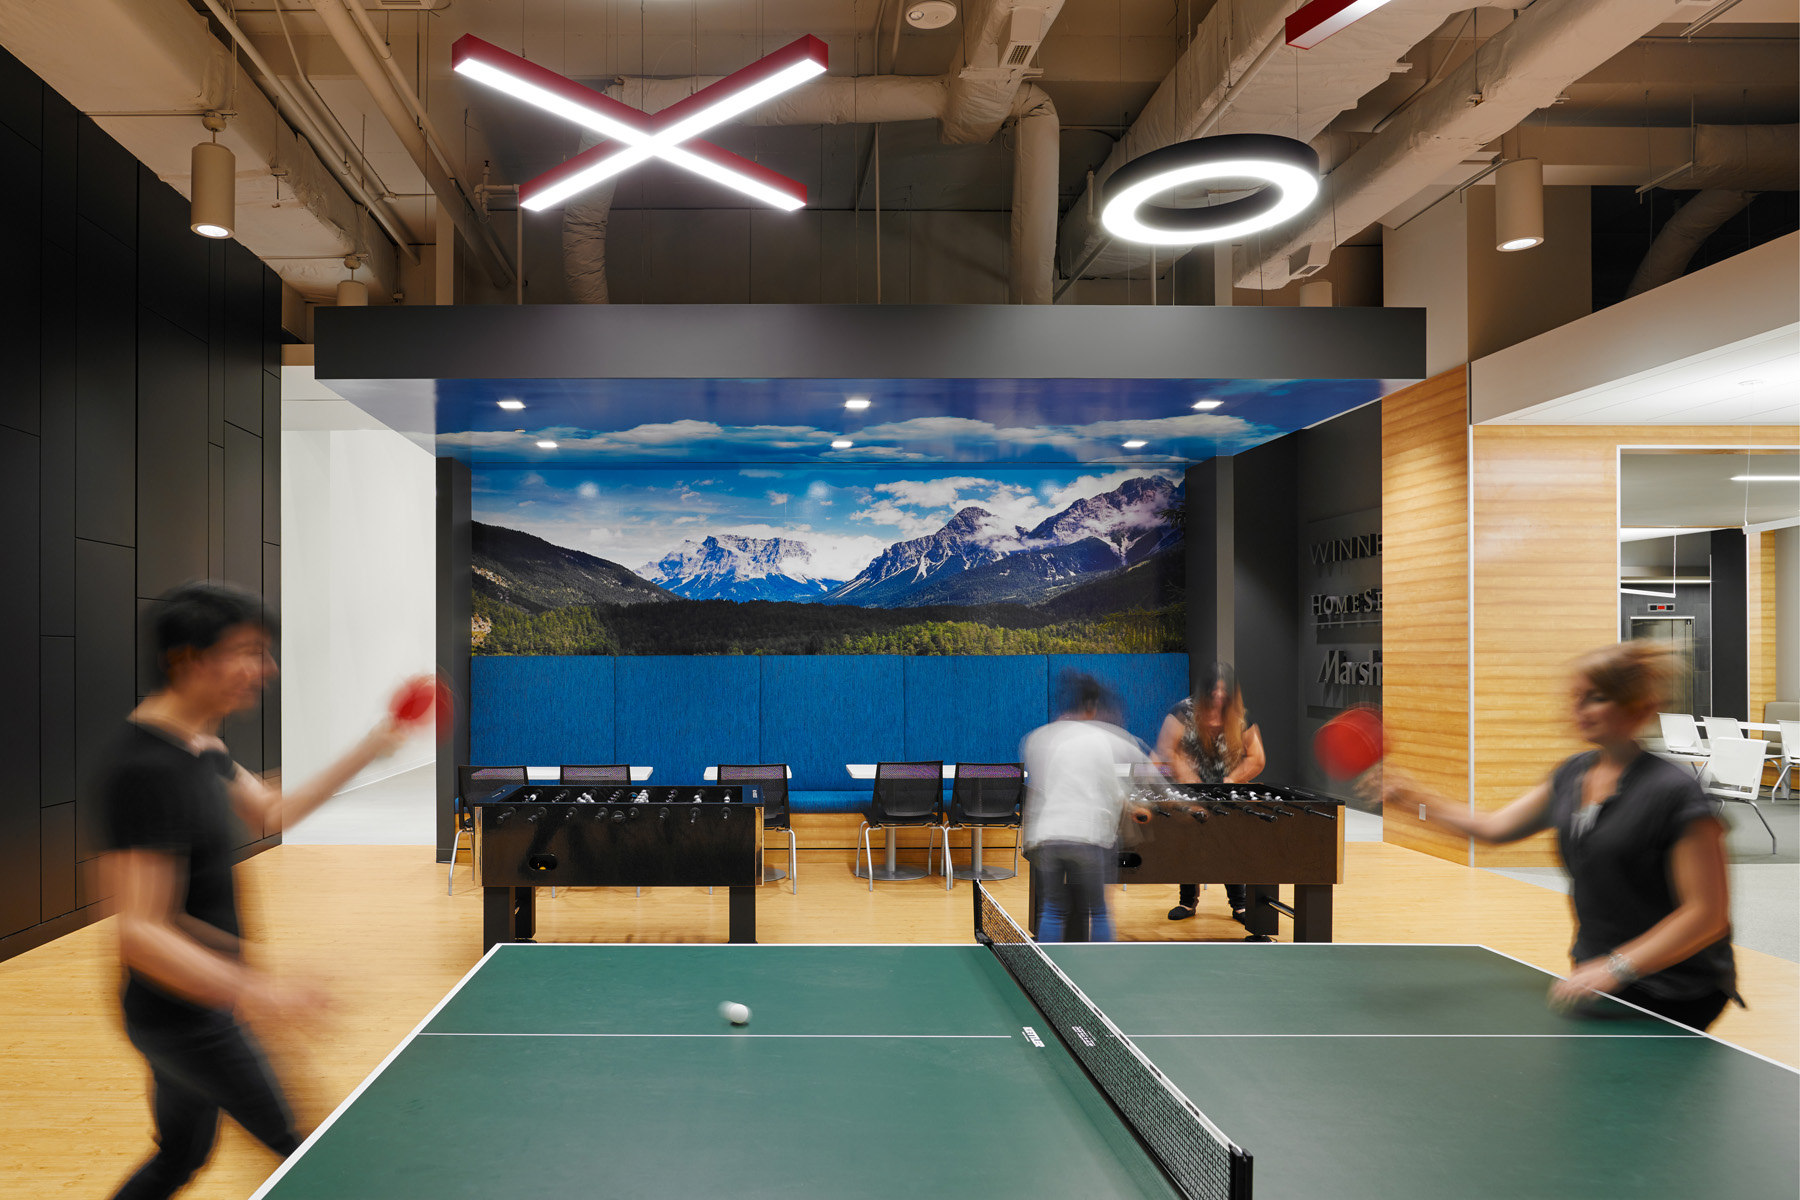 TJX game room with photo mural of mountains on wall, and people playing ping pong